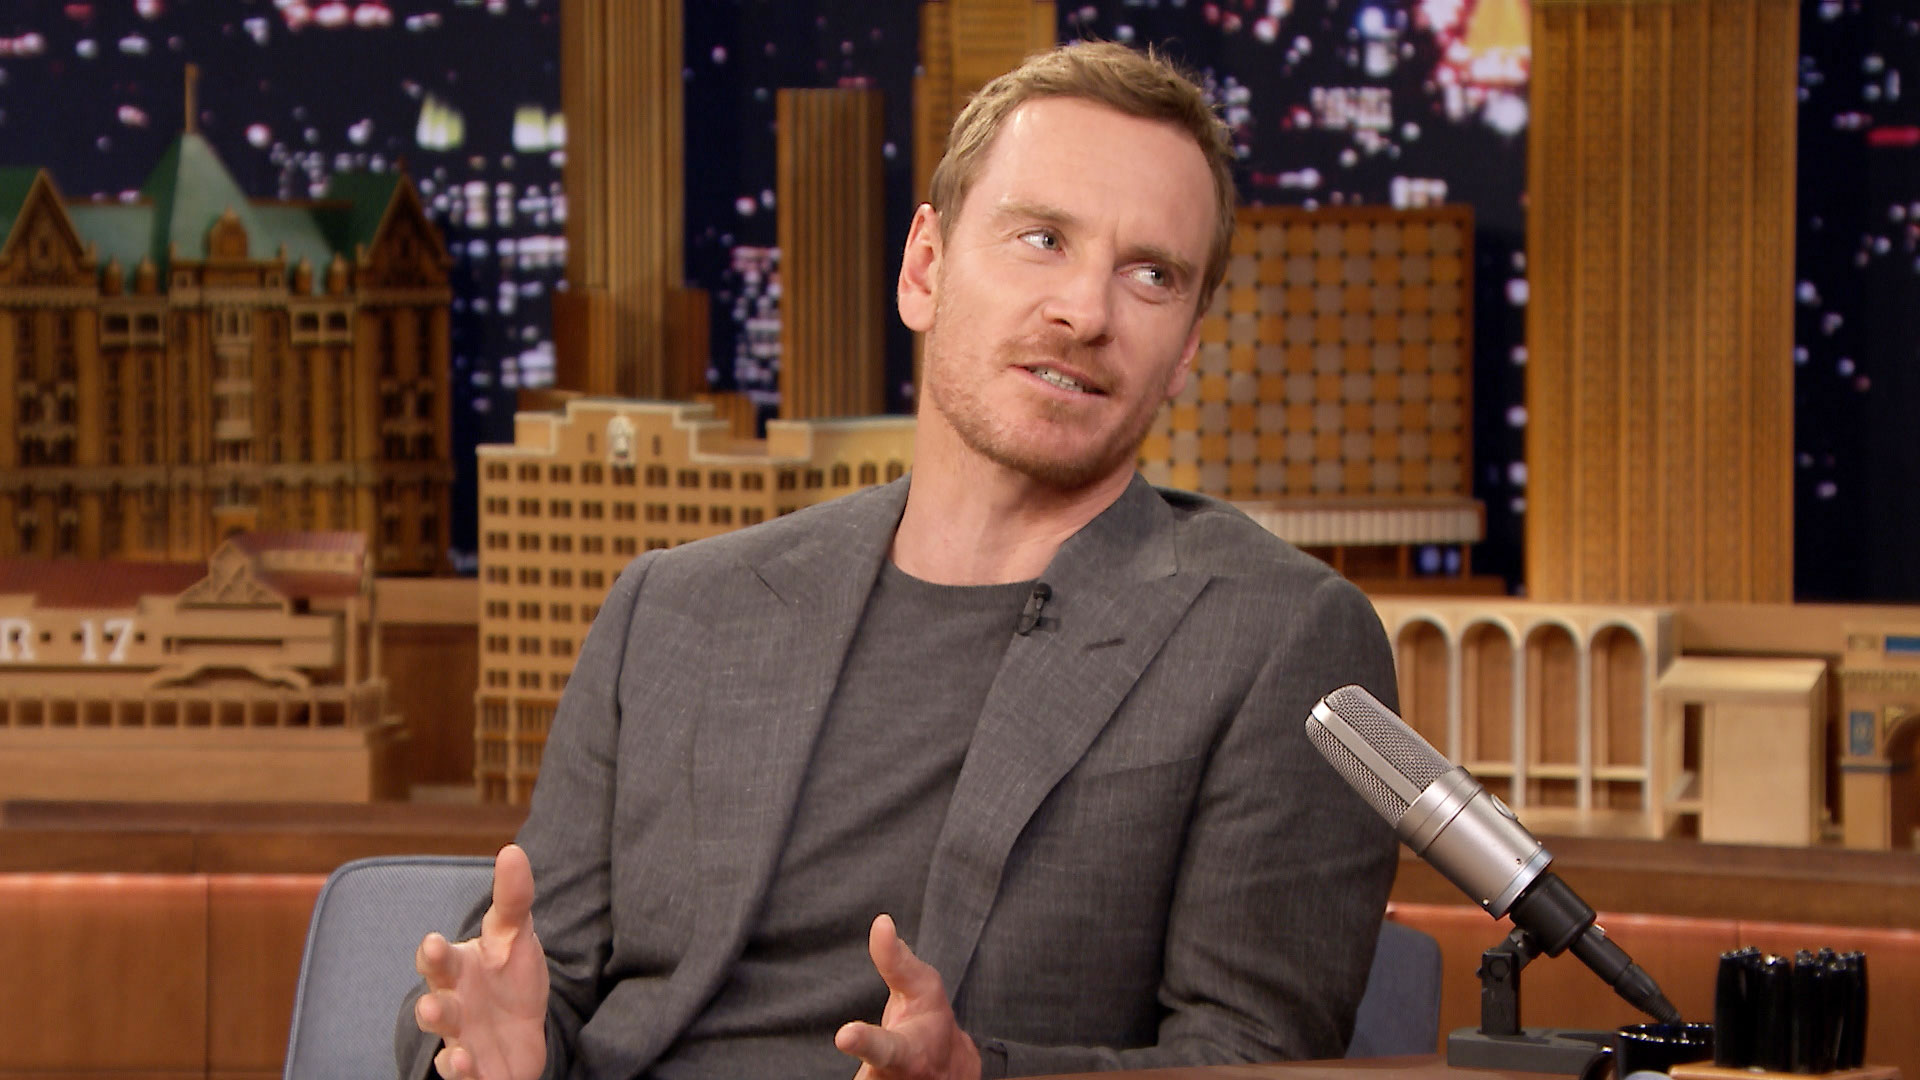 Michael Fassbender Celebrated His 40th Birthday with Spring Break